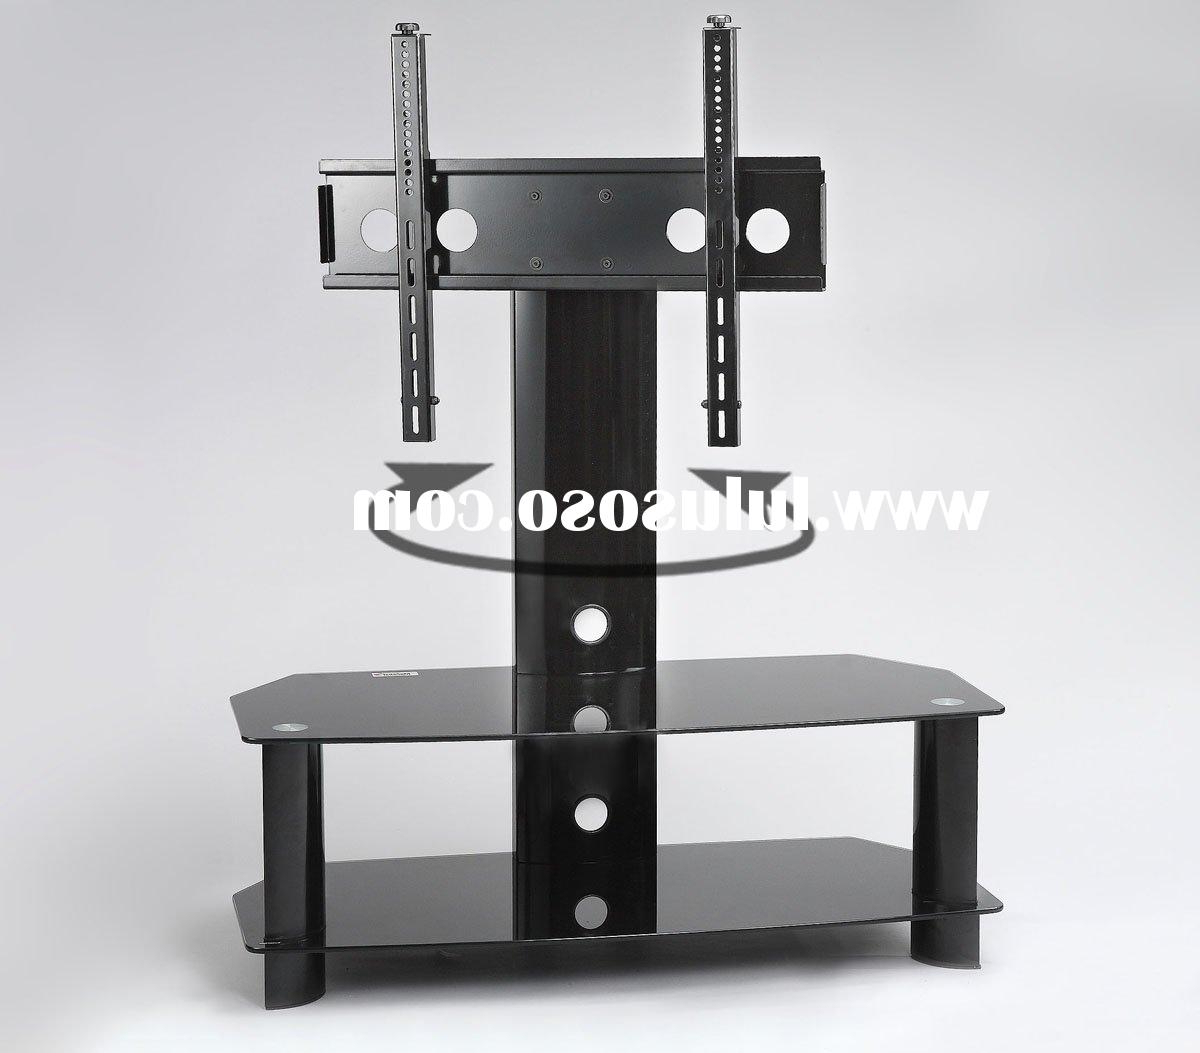 Vizio Tv Stand Amazon Swivel Mount With Built In Base Cabinet Doors Regarding Most Current Tv Stands Swivel Mount (View 2 of 20)